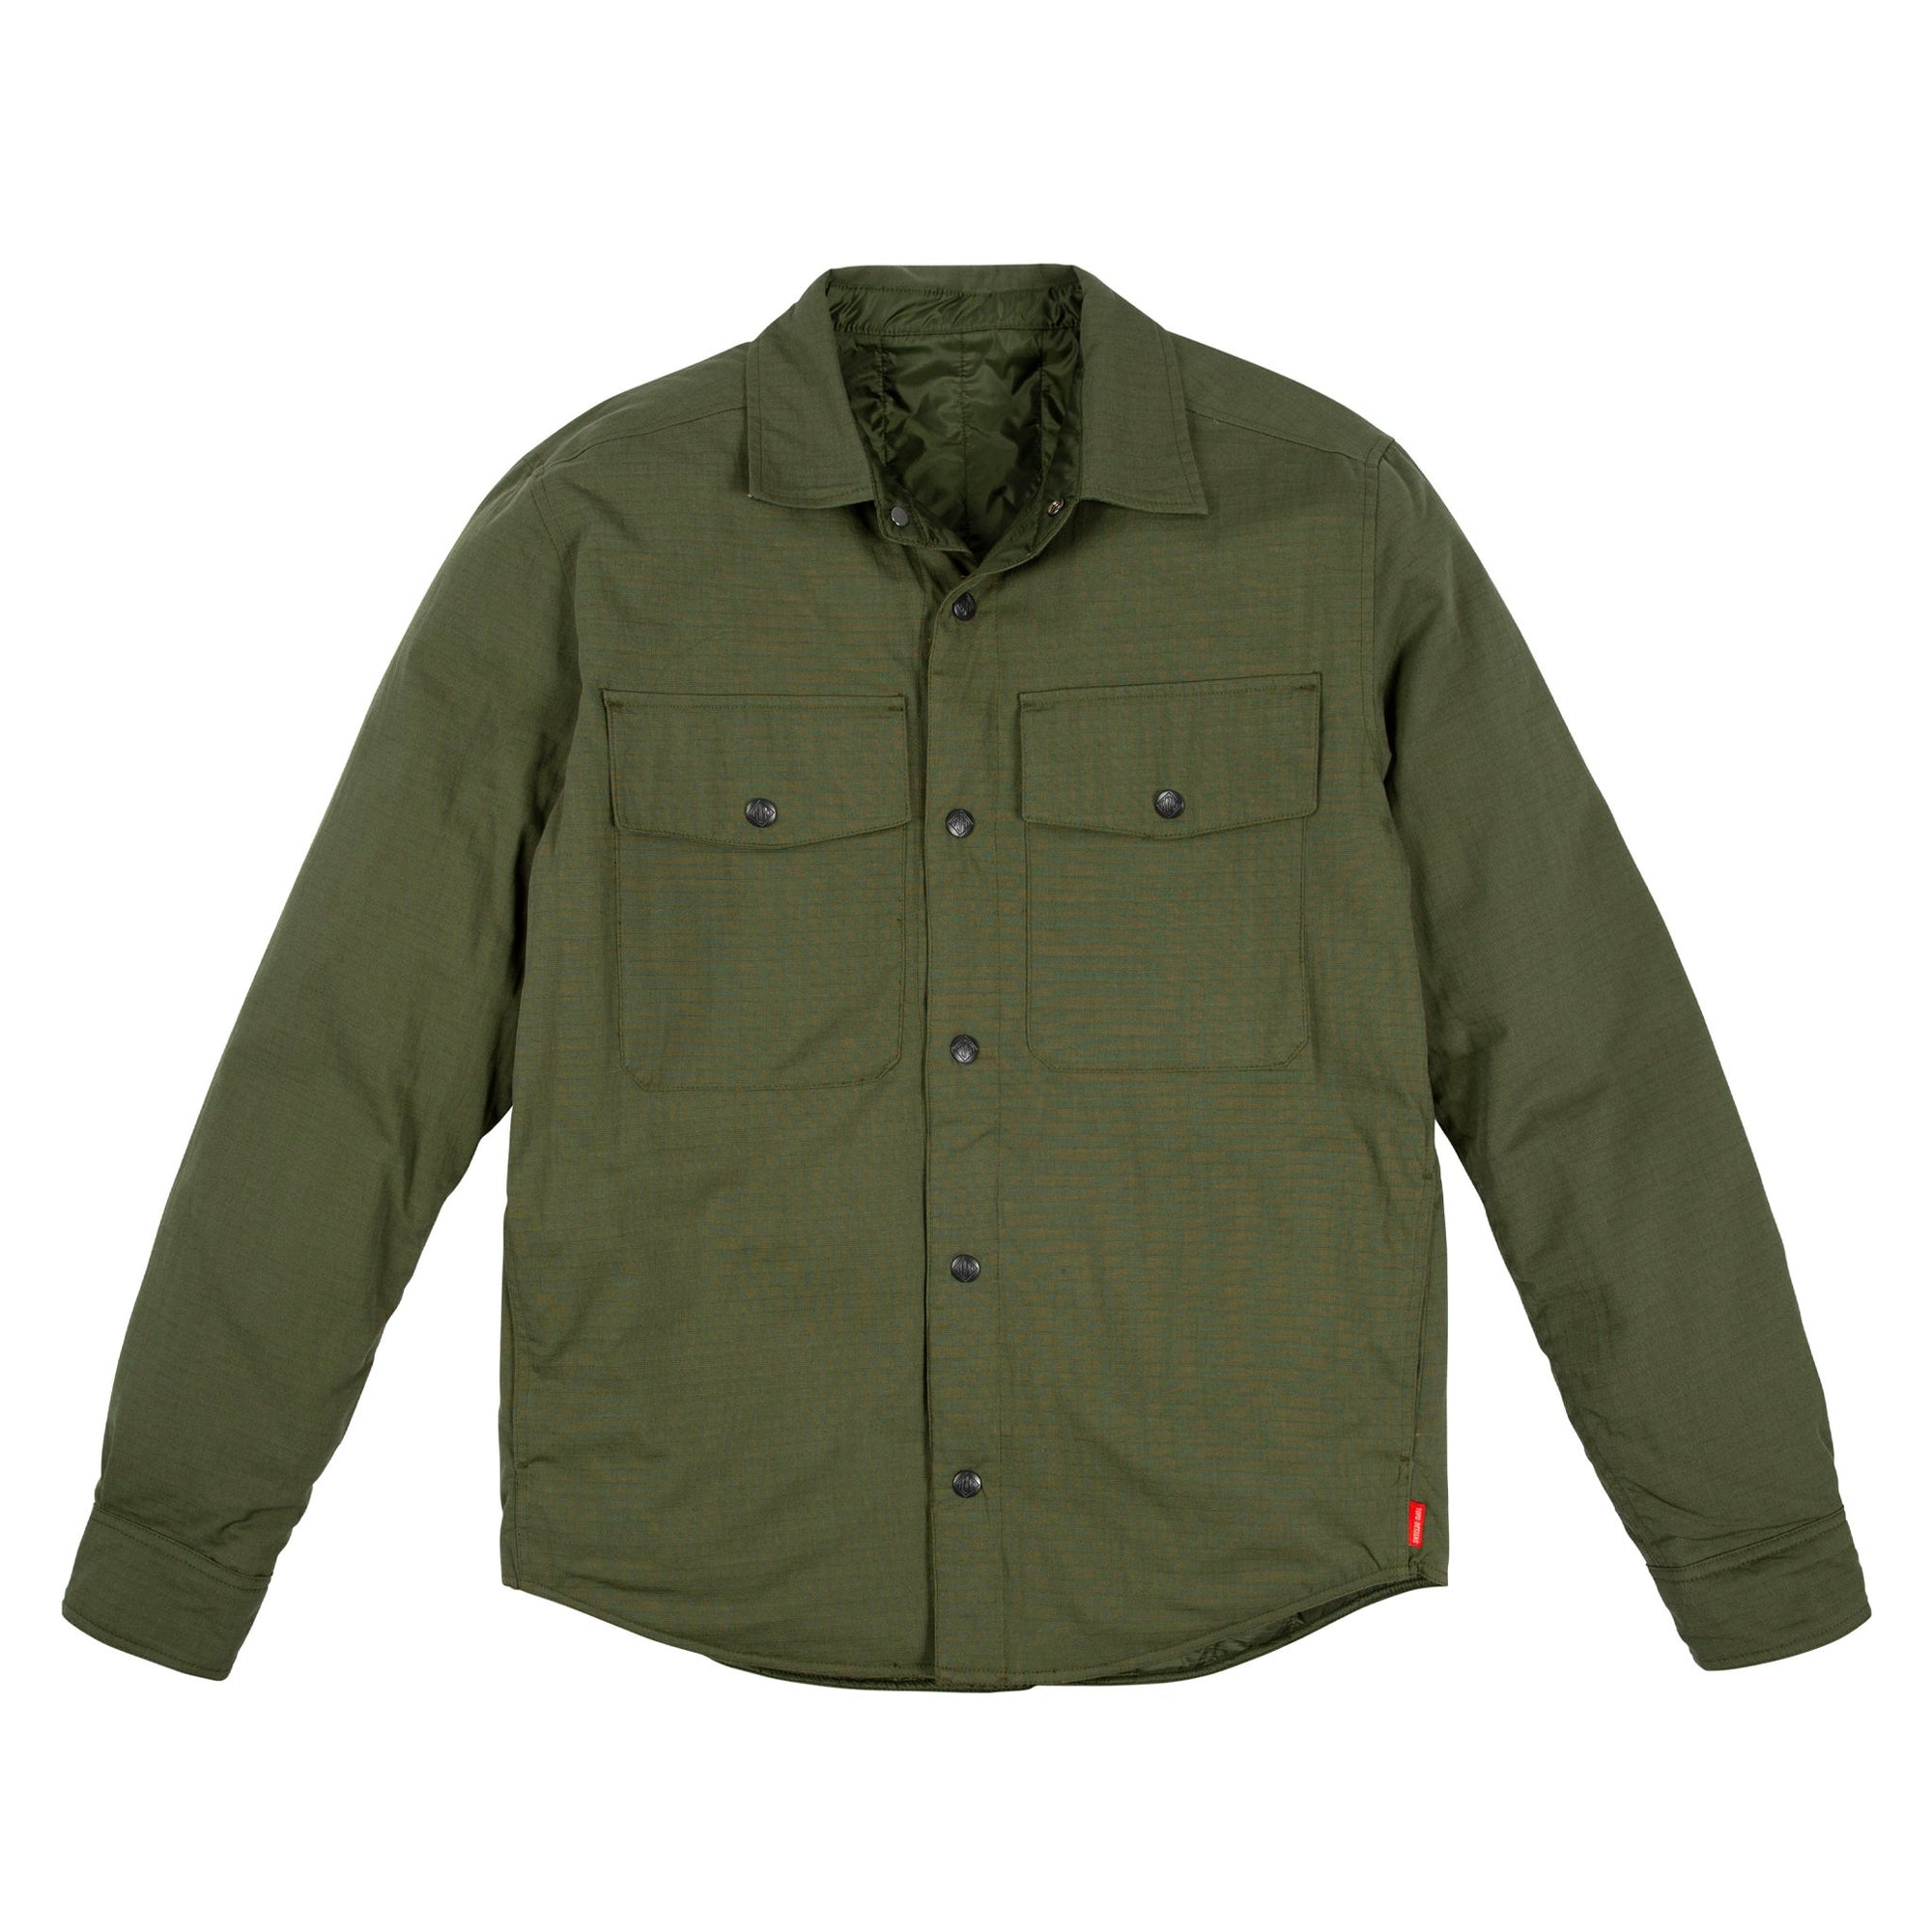 Topo Designs Men's Insulated Shirt Jacket - Sale